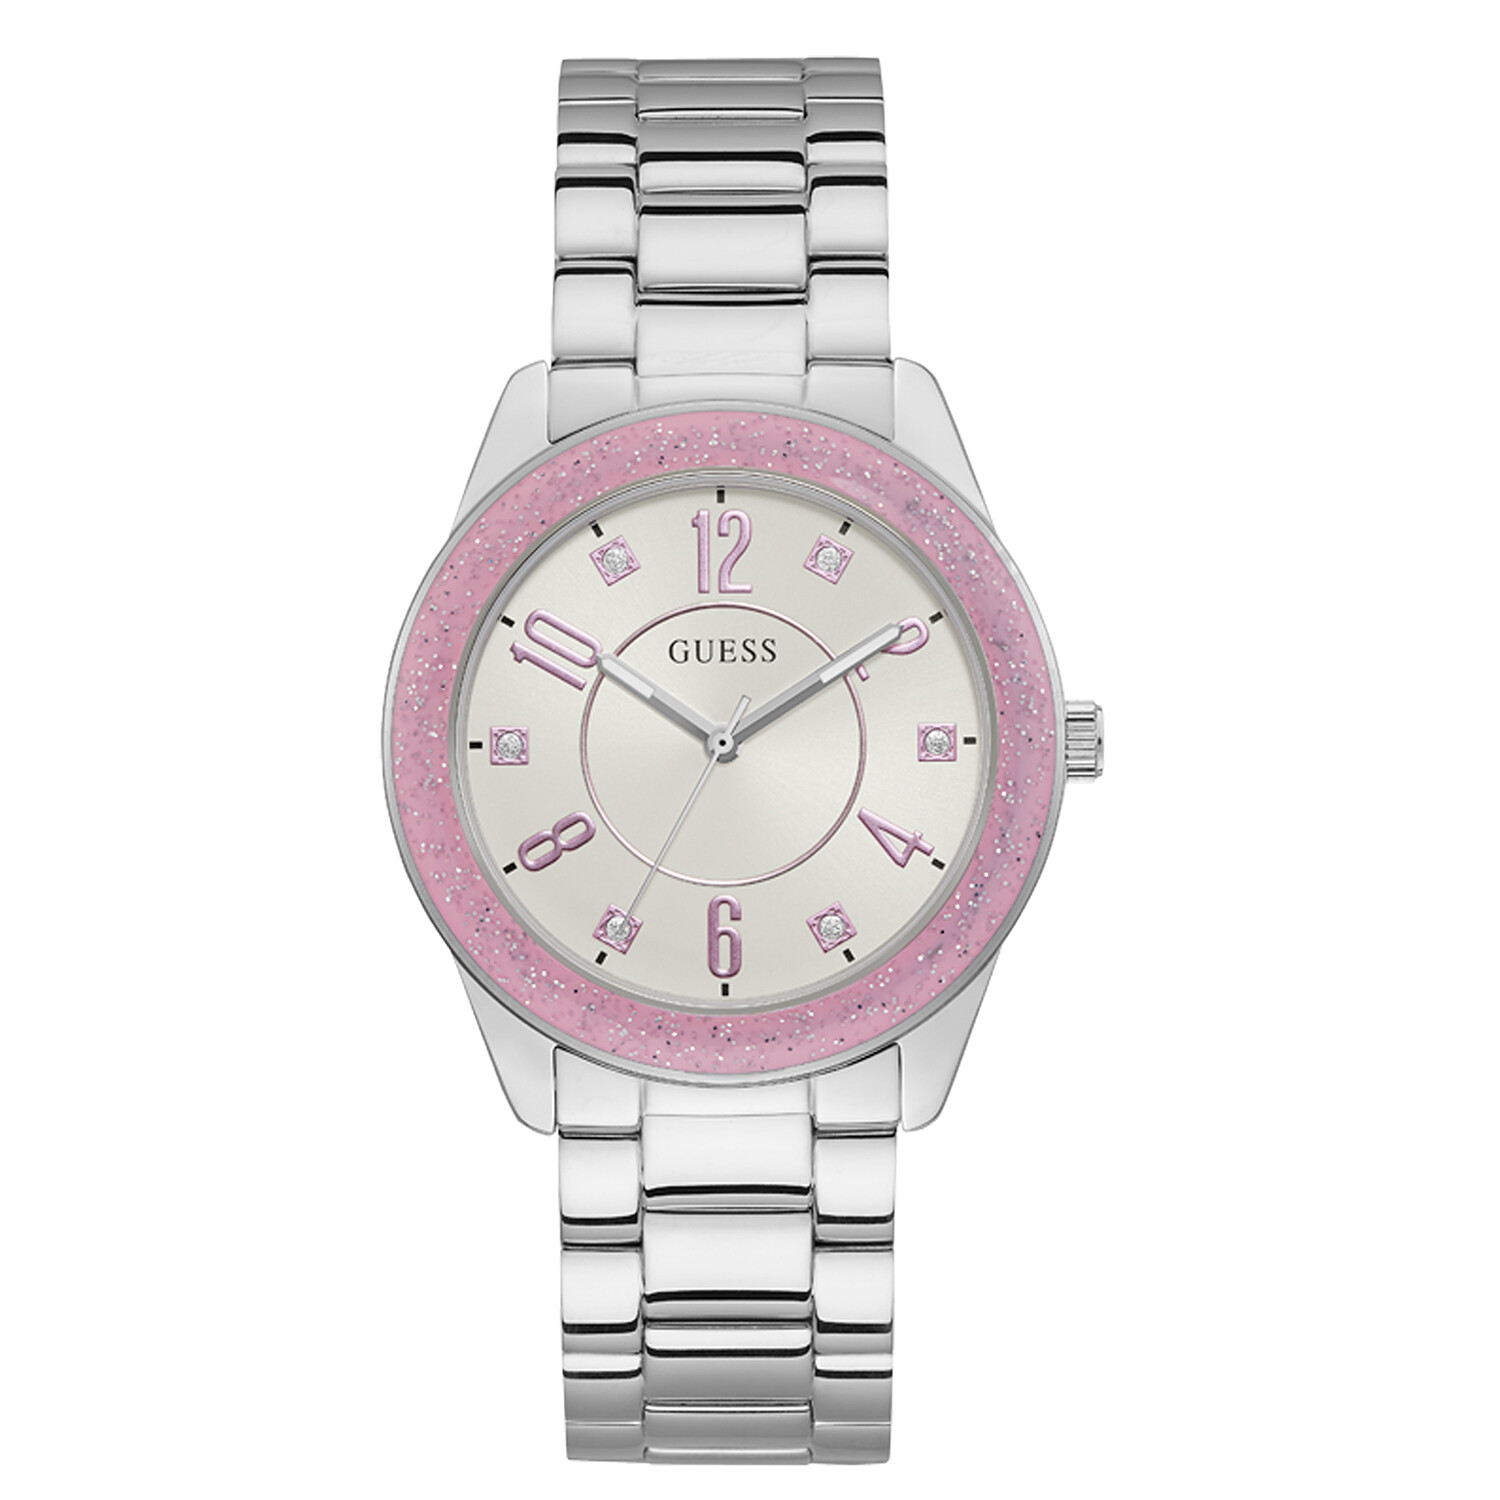 Guess Women's Capri U1238L1 Silver Stainless-Steel Quartz Fashion Watch